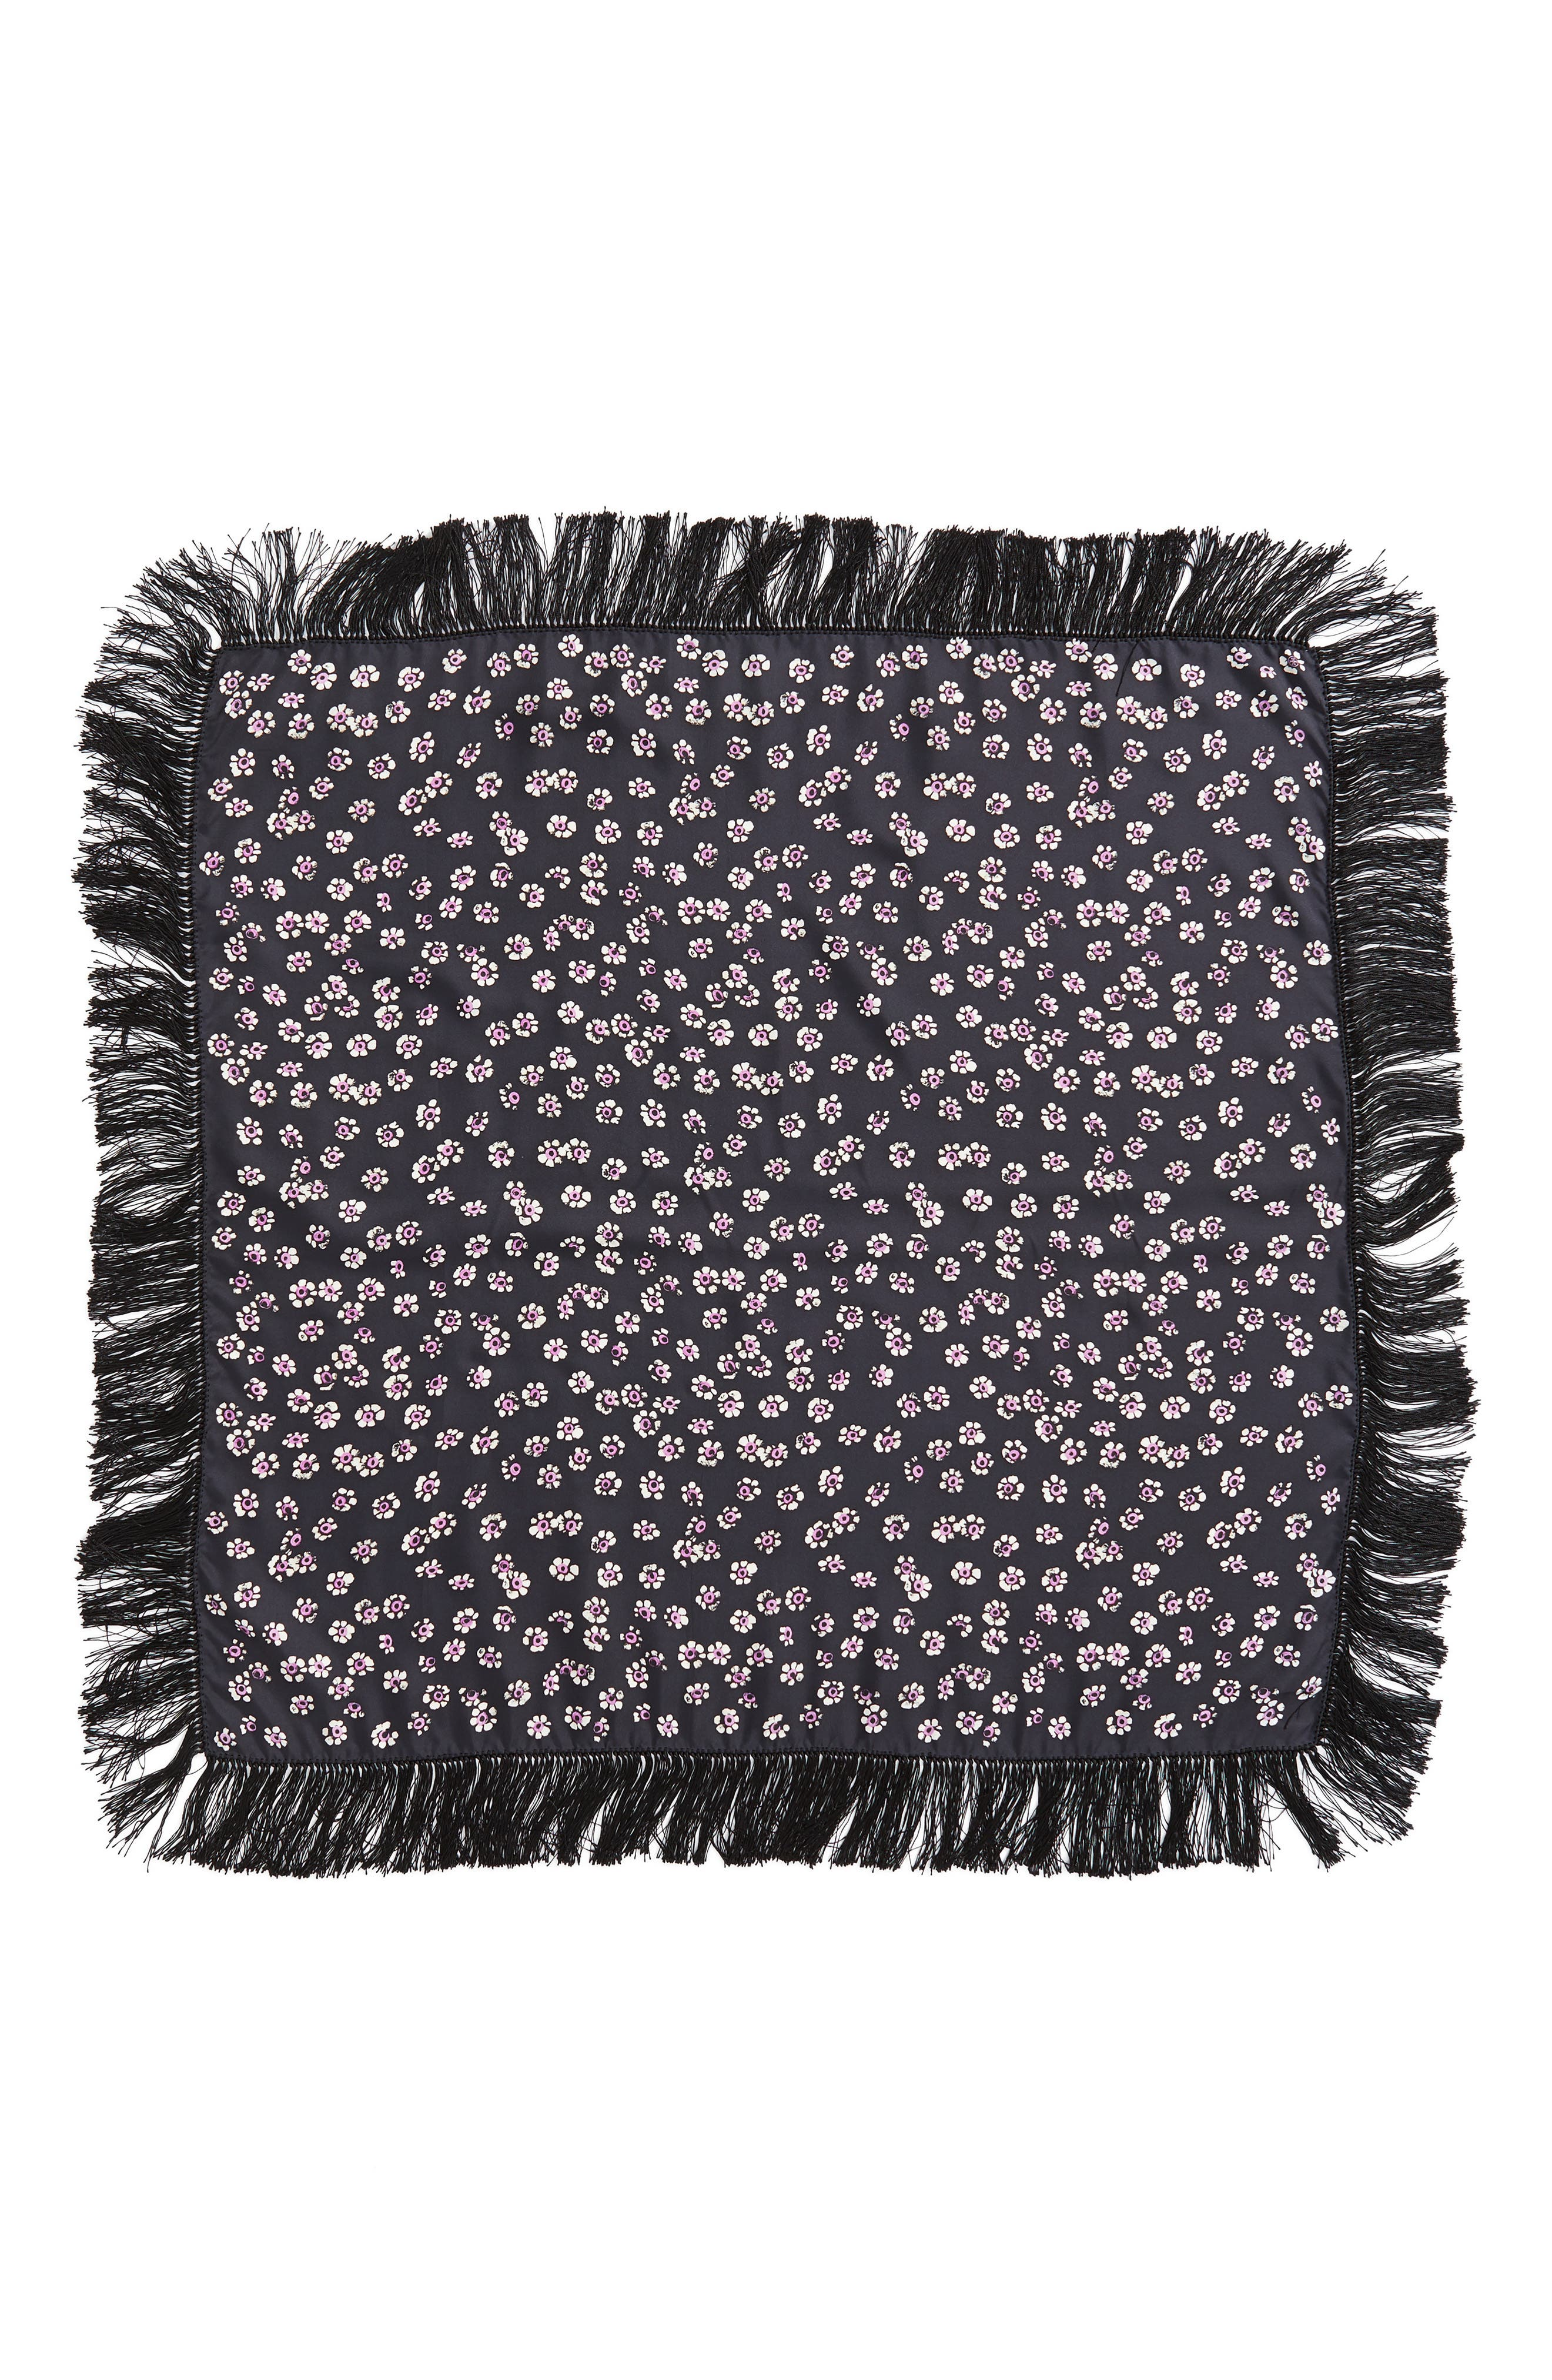 TORY BURCH,                             Fringed Square Silk Scarf,                             Alternate thumbnail 3, color,                             016